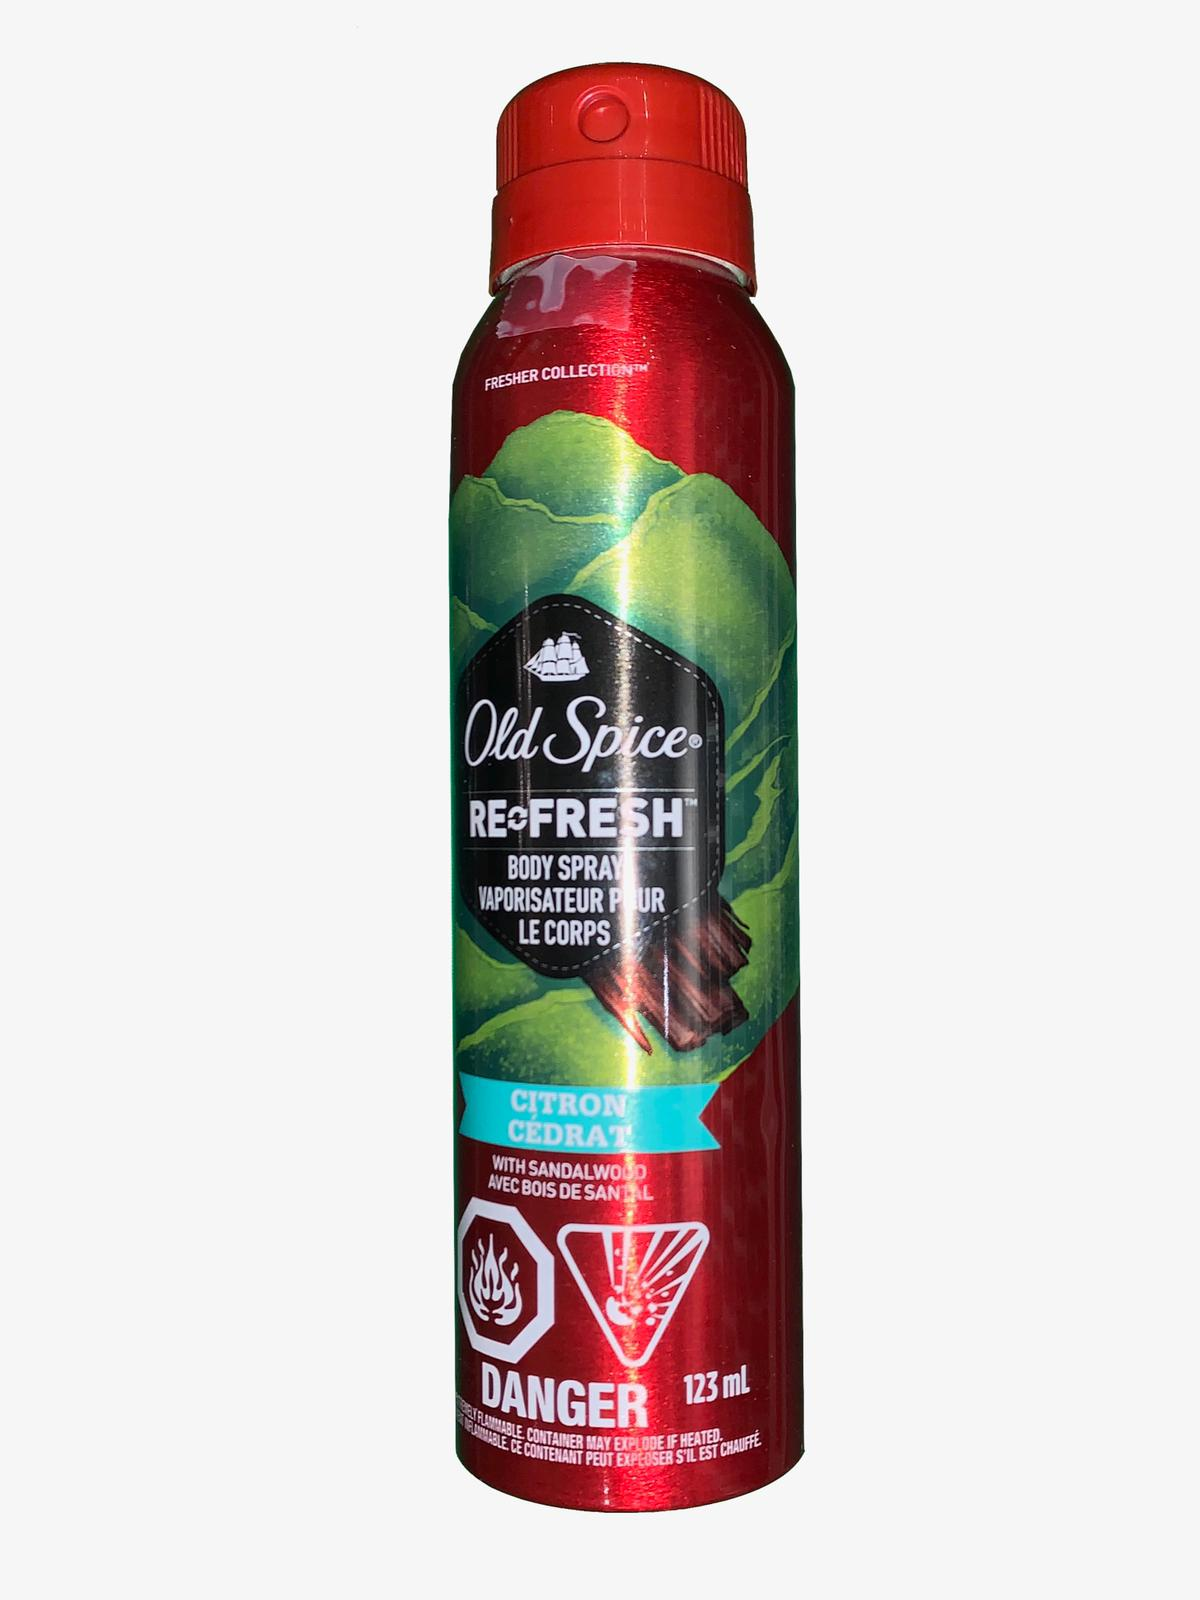 Old Spice Refresh Body Spray Citron with Sandalwood 123ml